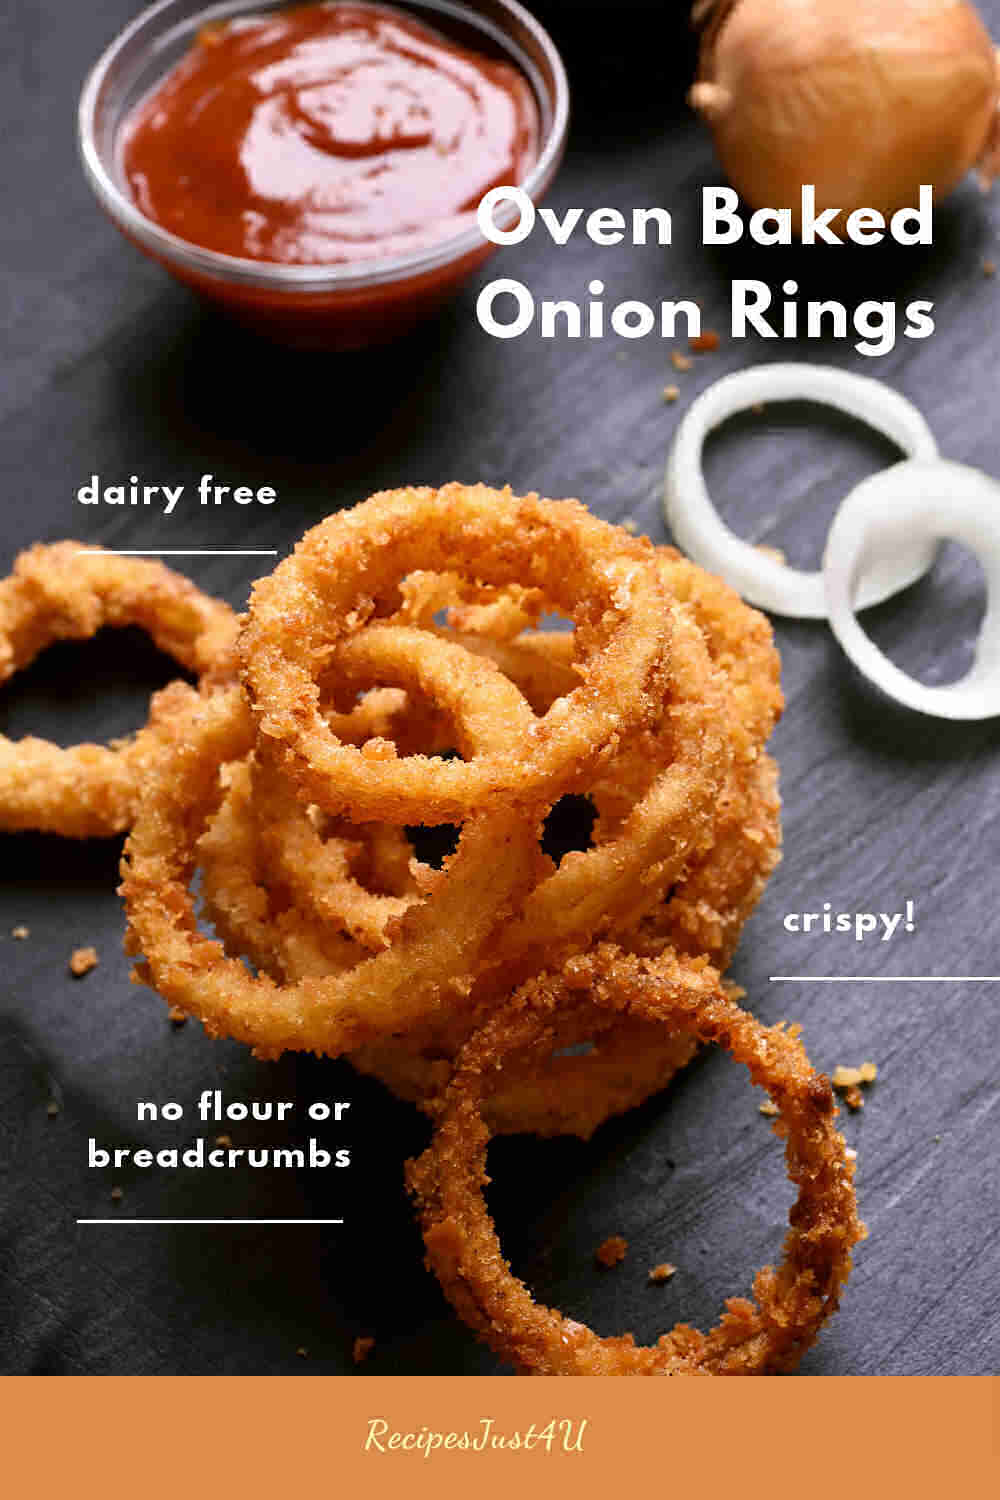 Onion rings with words, crispy, no flour or breadcrumbs, dairy free and Oven Baked Onion Rings title.